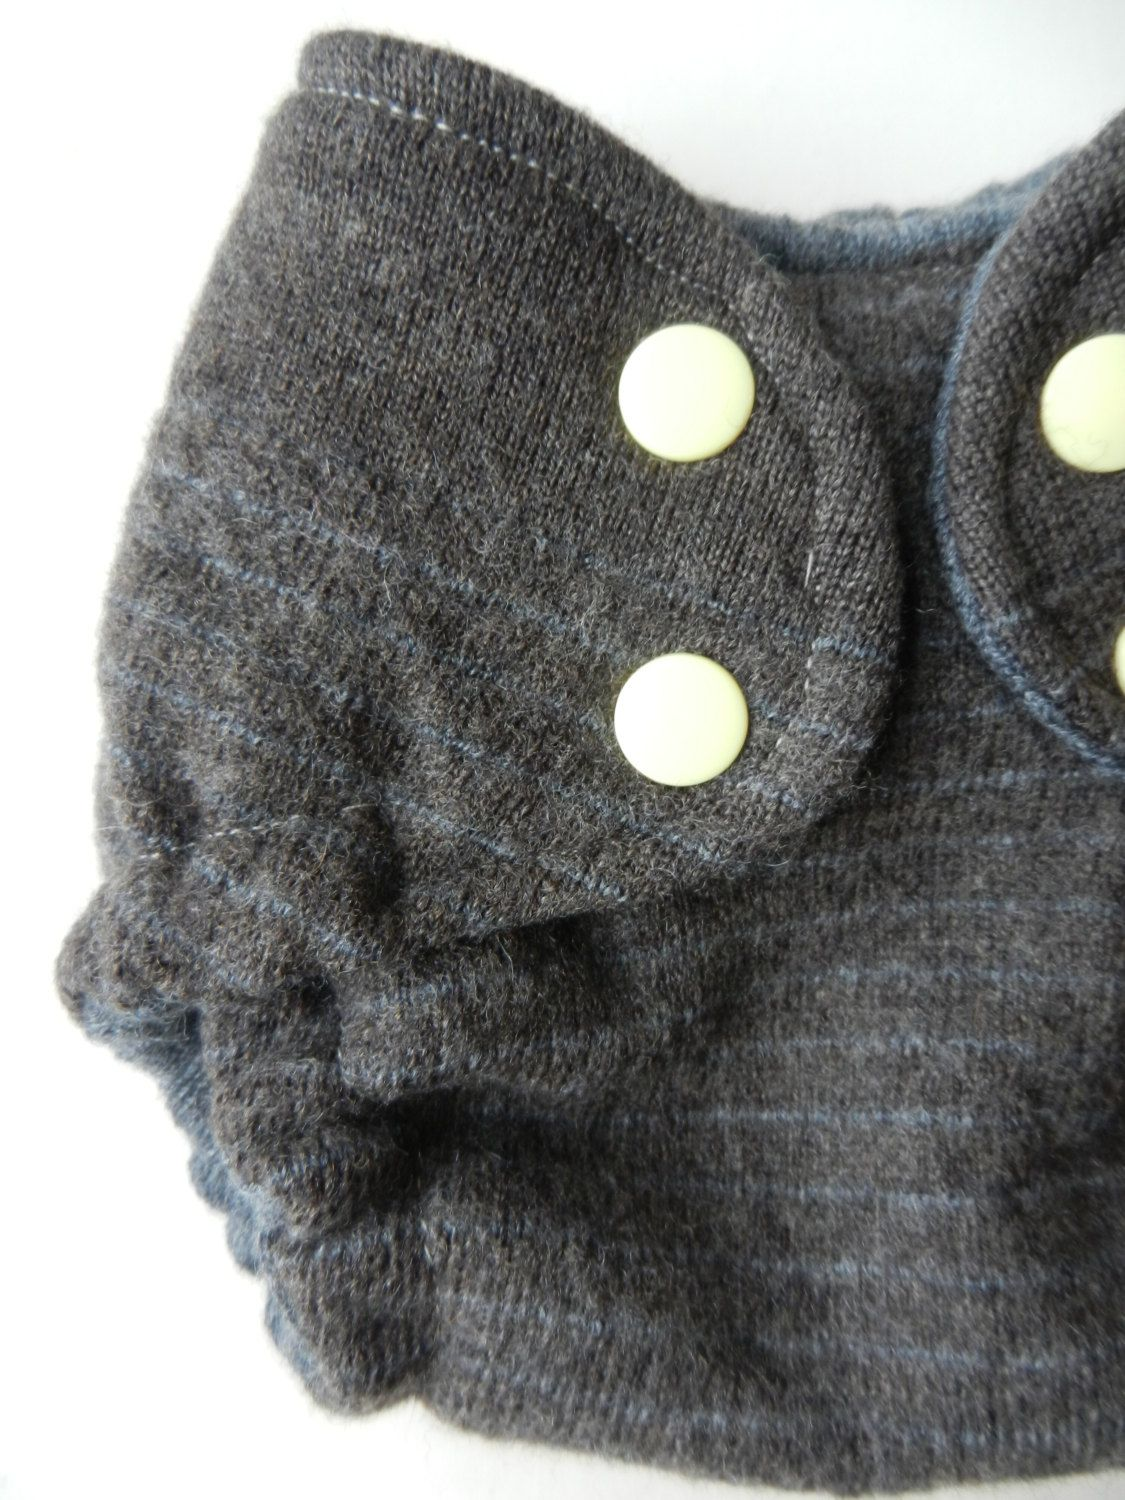 soakers Woolen and angora baby shorties Size M diaper covers